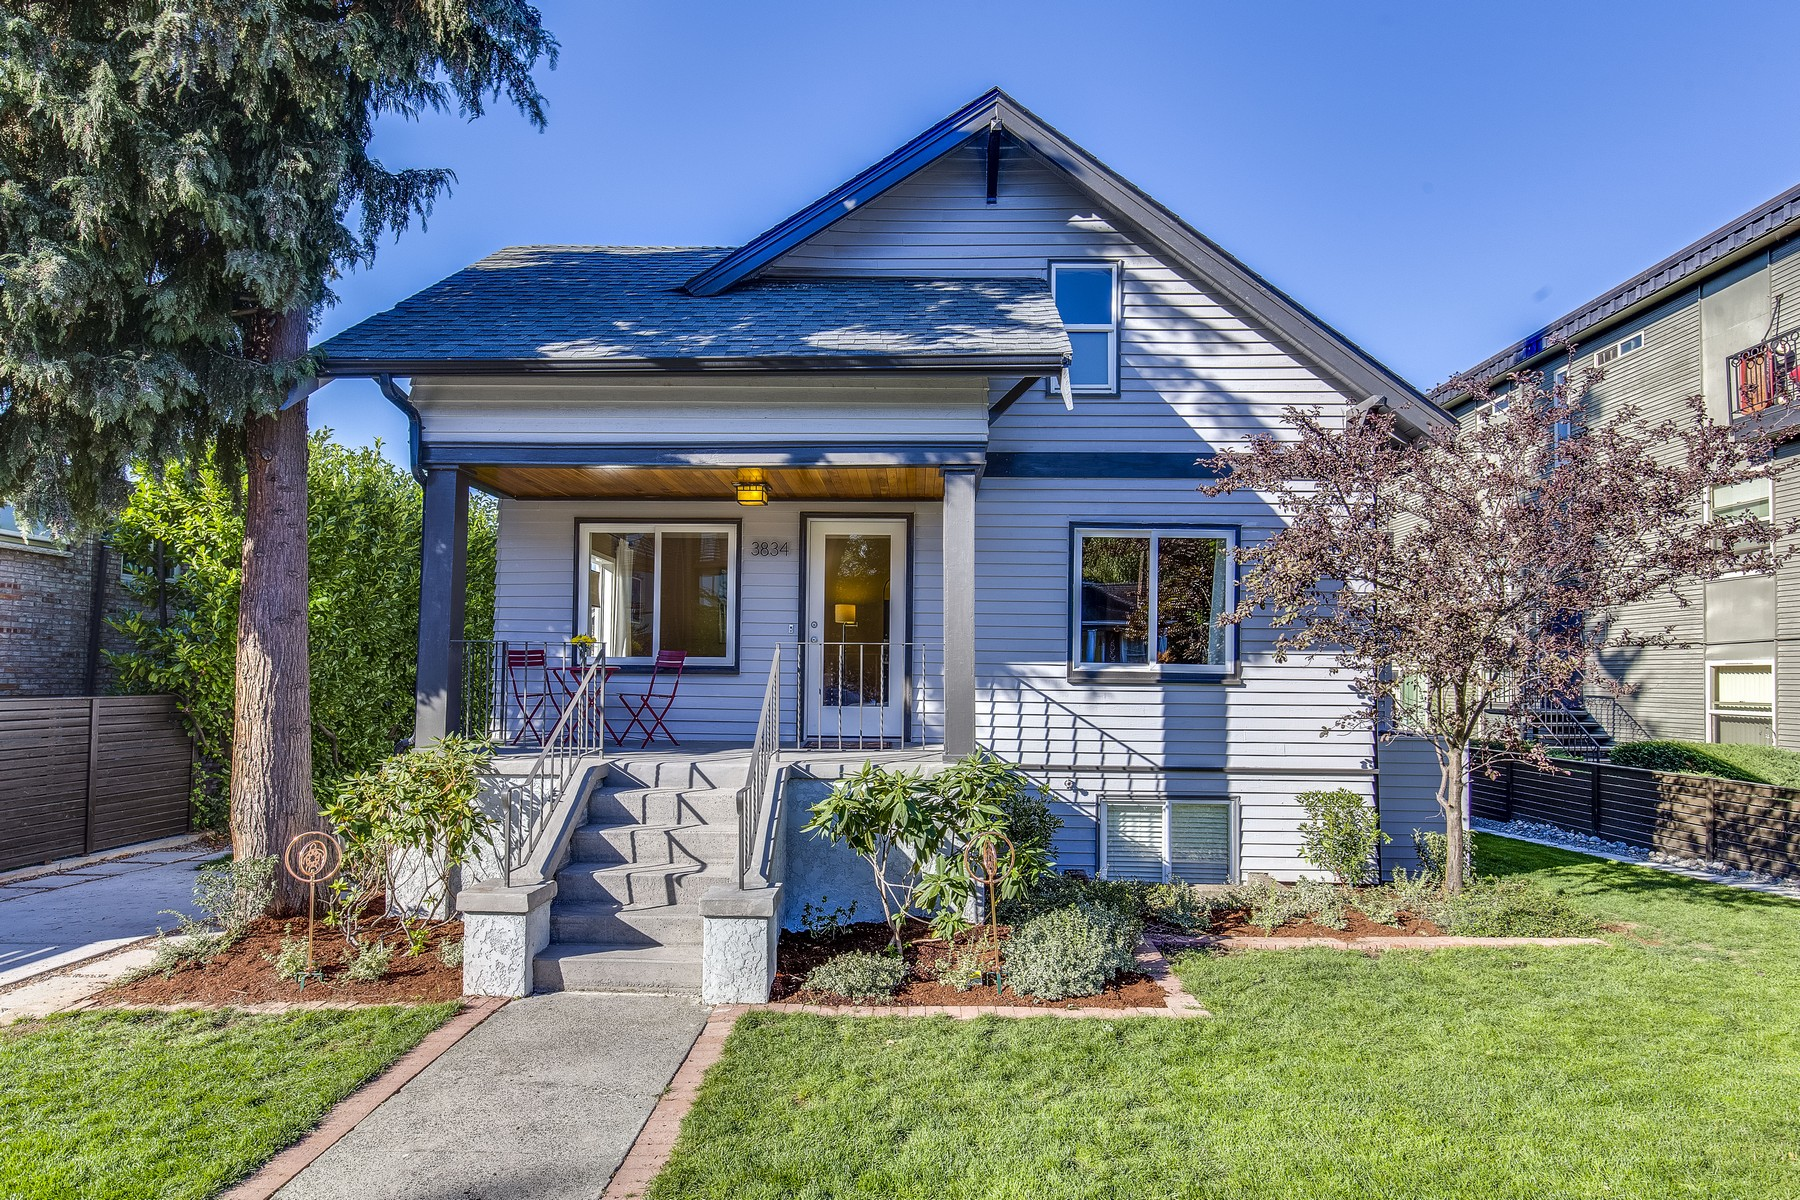 Single Family Home for Sale at Cottage in Historic District 3834 S. Edmunds Street Seattle, Washington 98118 United States